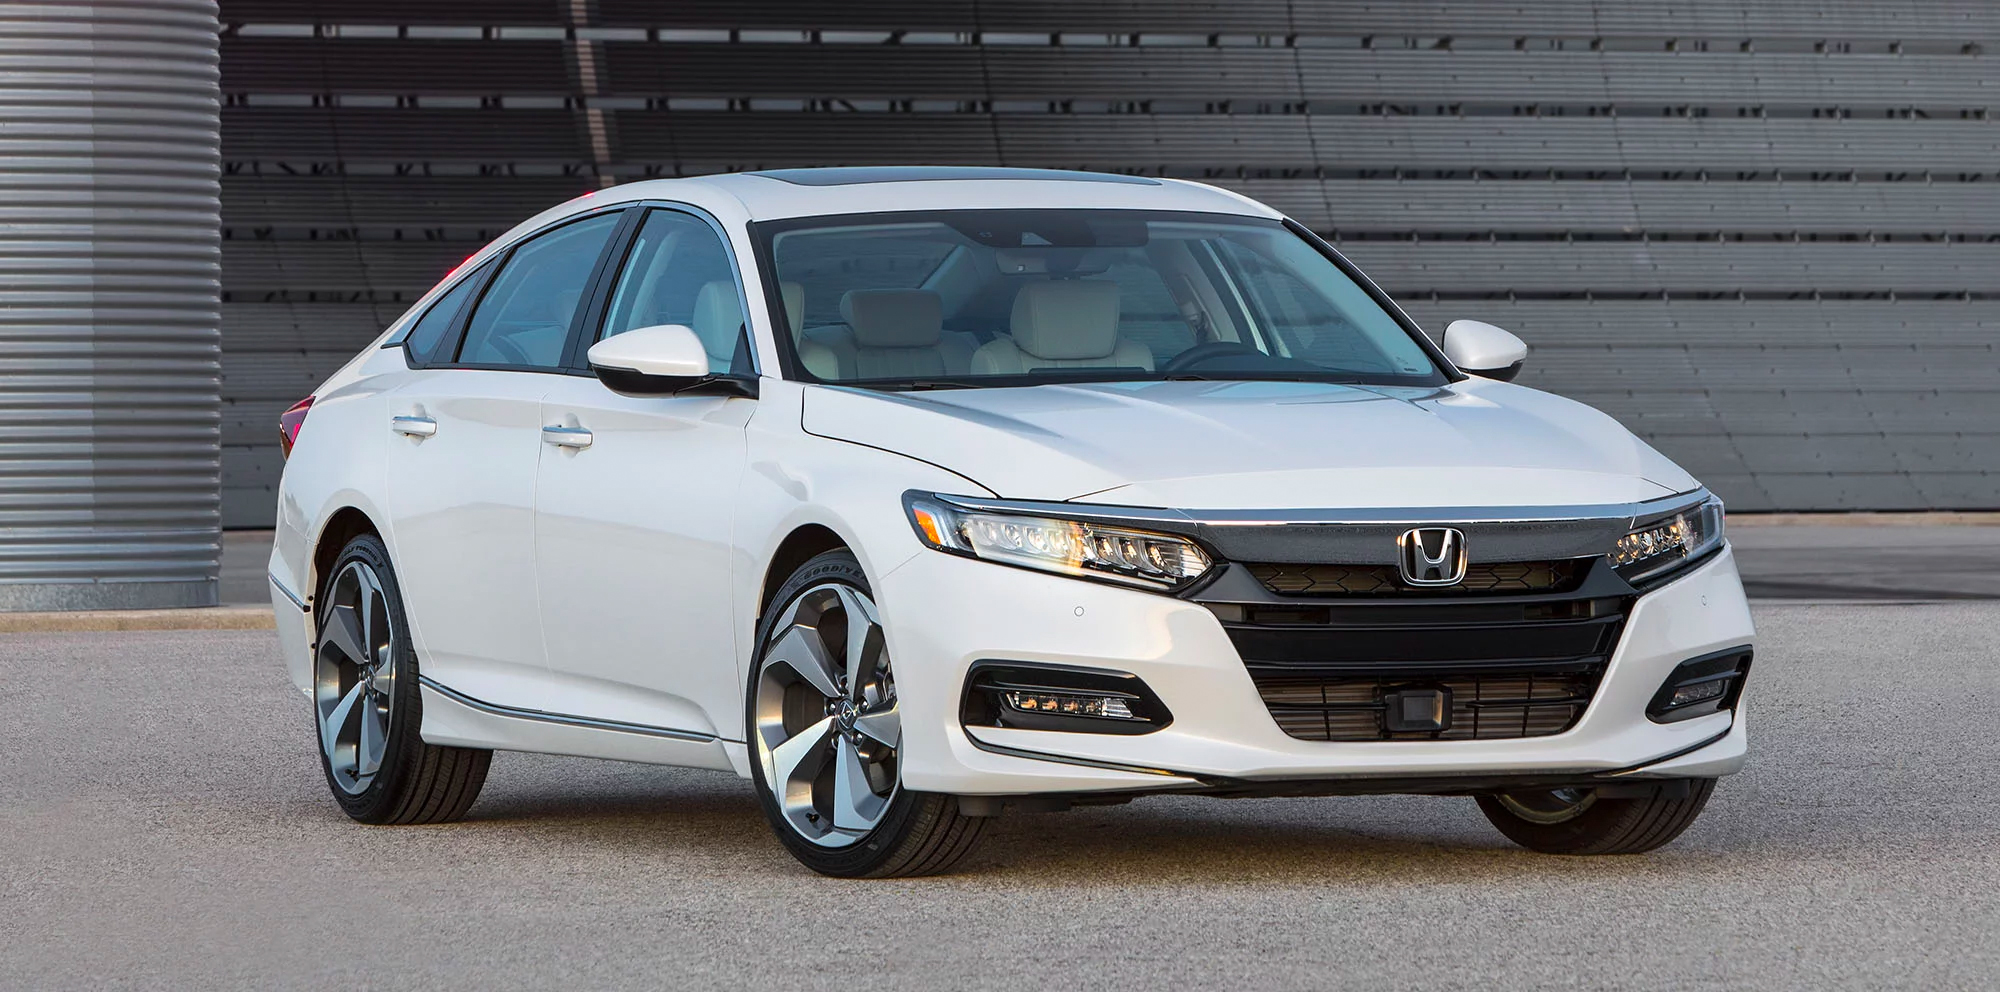 2020 Honda Accord here in 'early December'